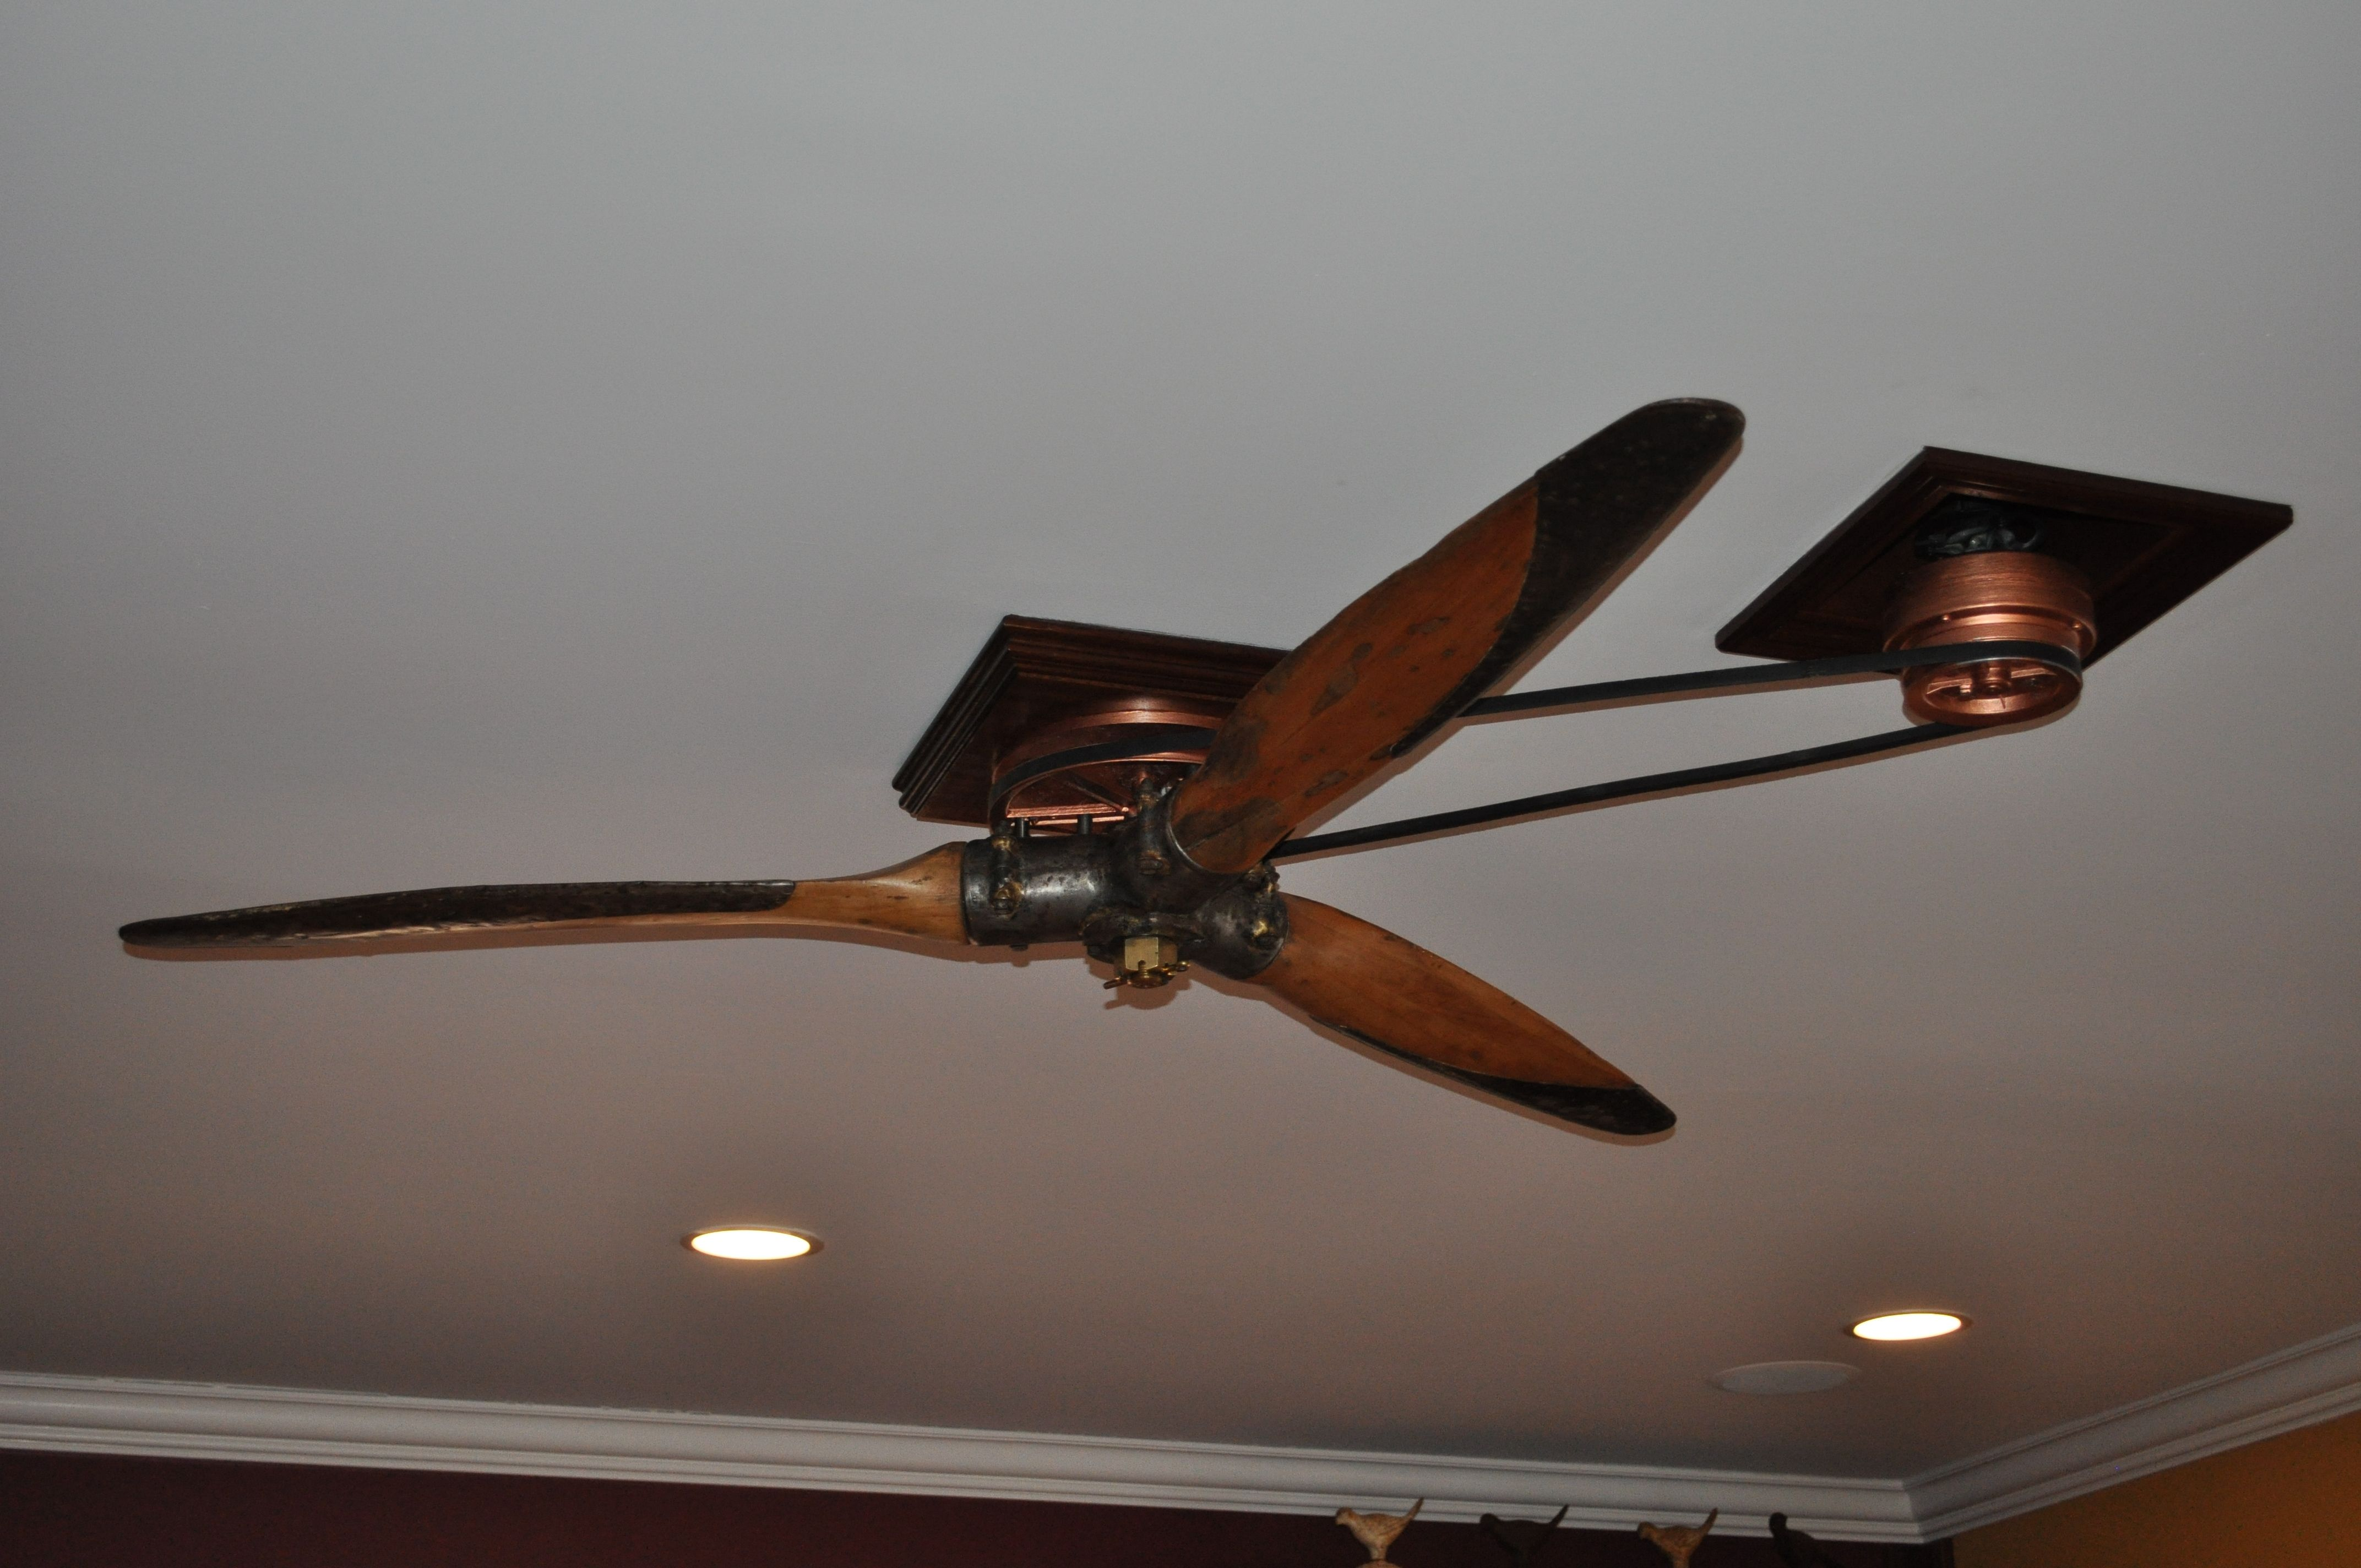 Dsc 0396 Propeller Ceiling Fan Belt Driven Ceiling Fans